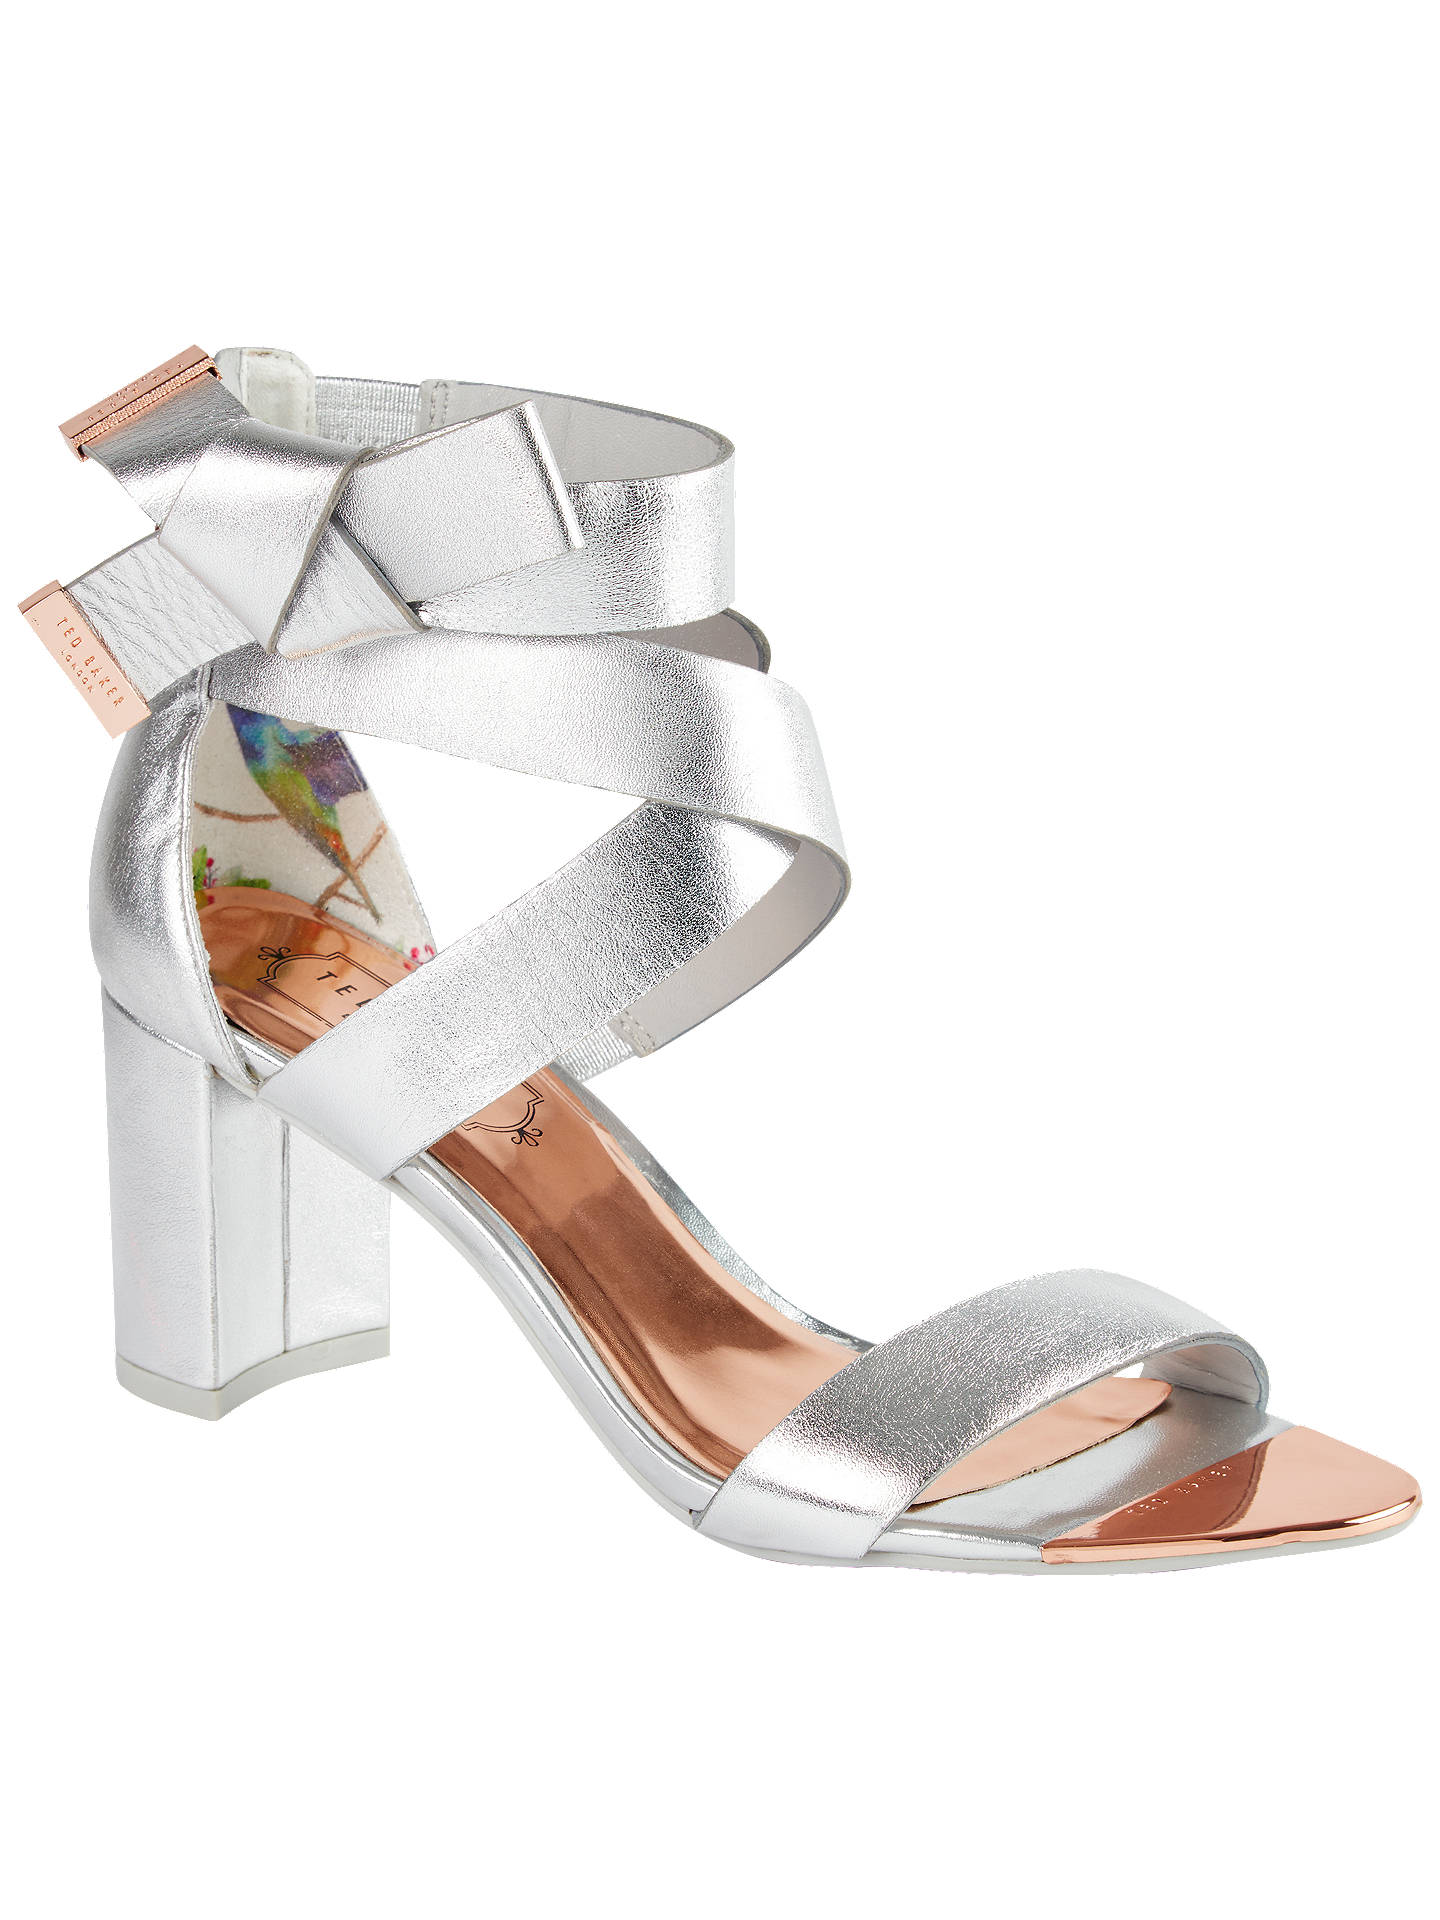 9720d0b8f7d Buy Ted Baker Peyepa Block Heel Sandals